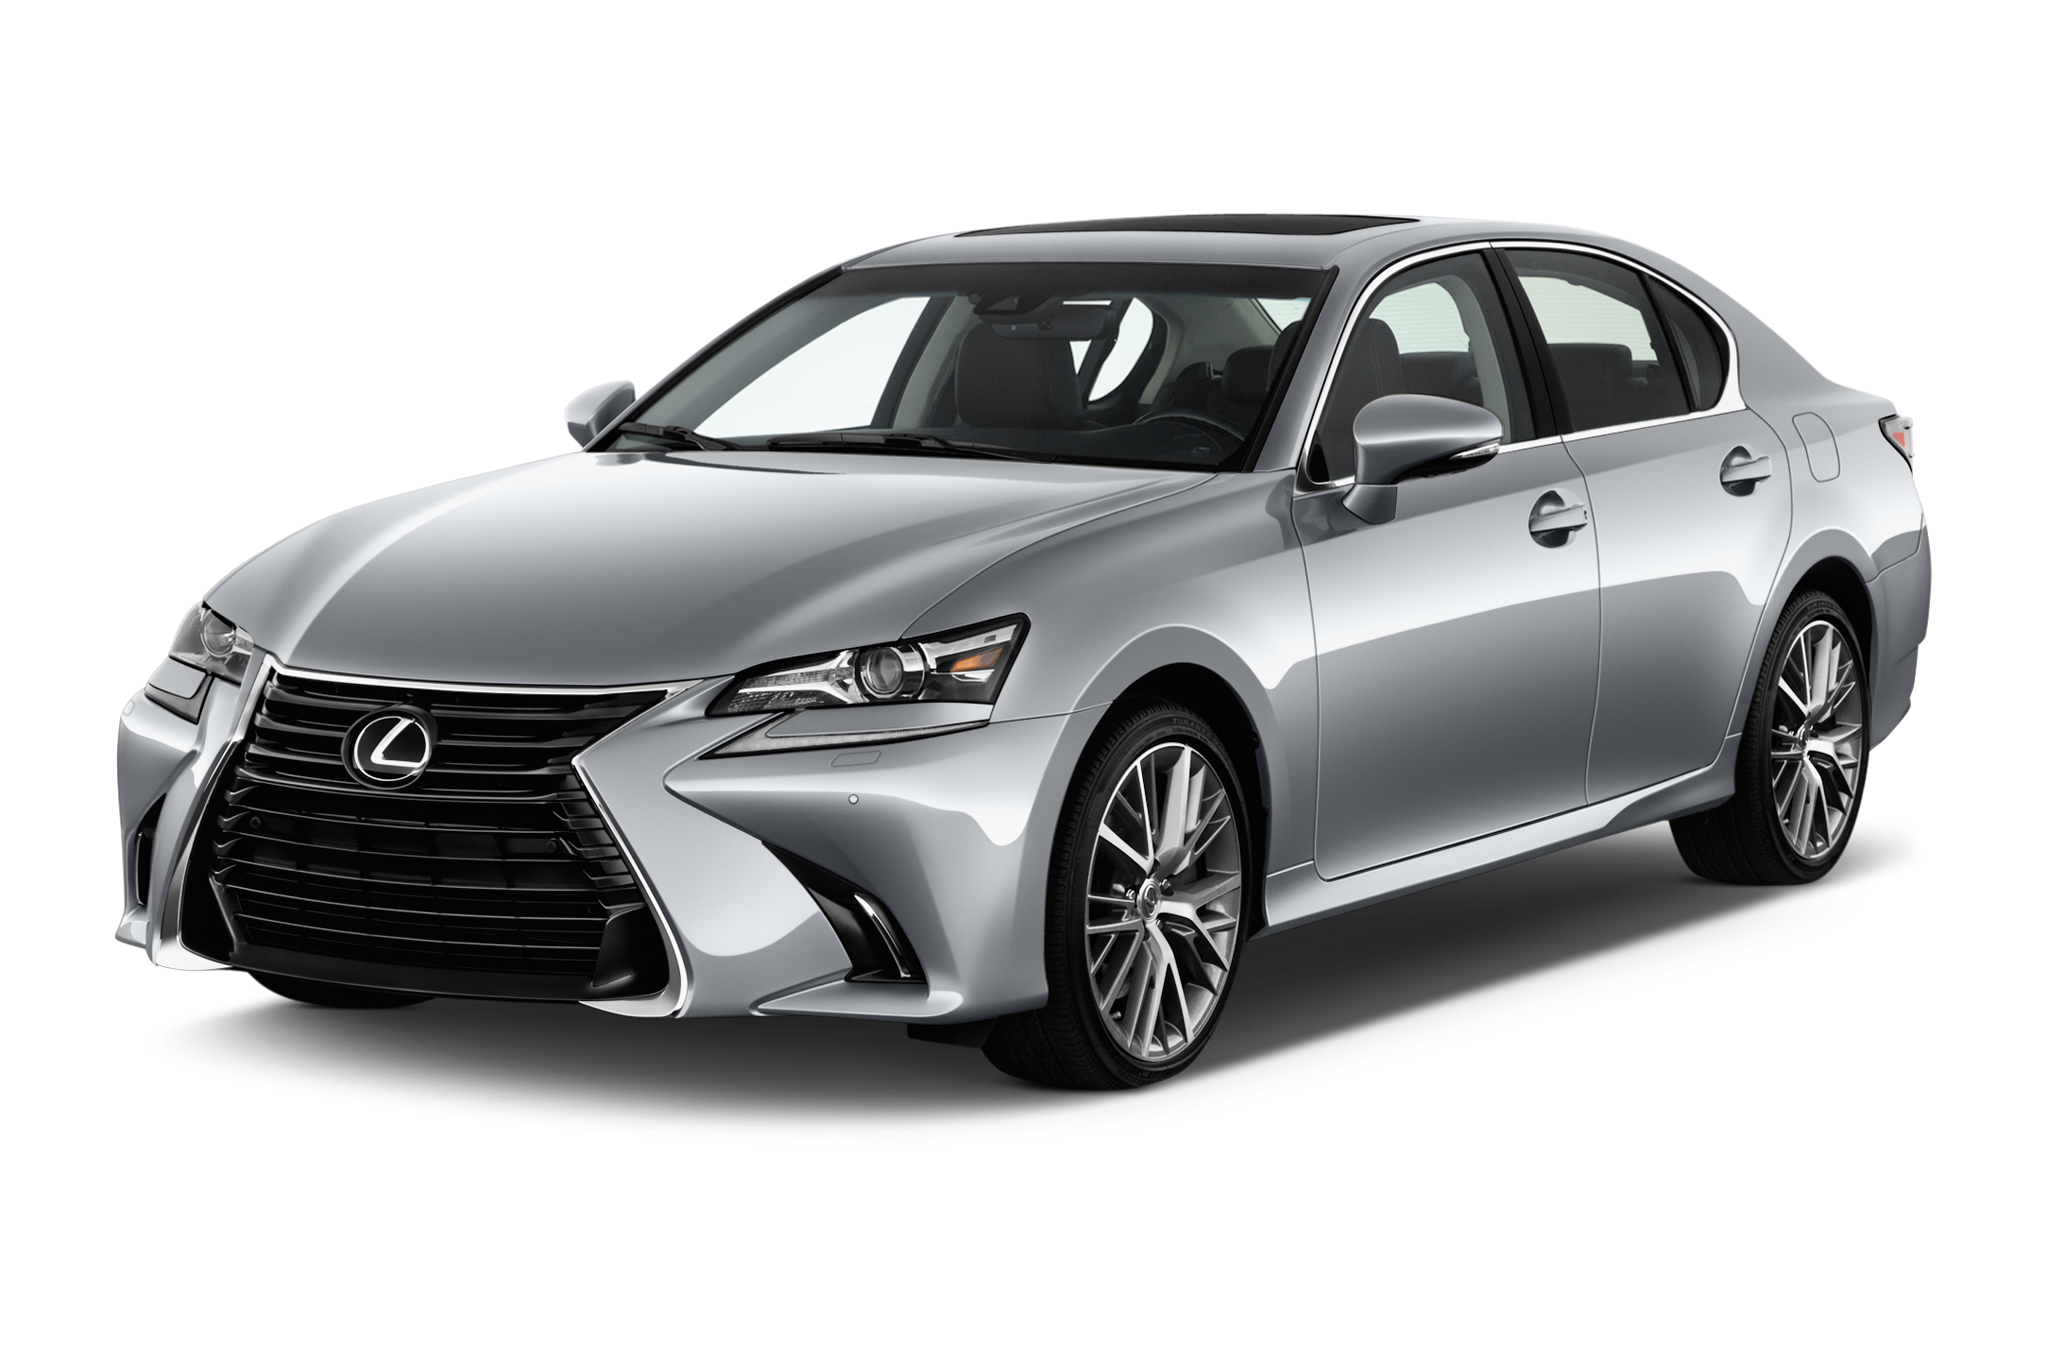 2018 lexus gs 450h quick take review automobile magazine. Black Bedroom Furniture Sets. Home Design Ideas